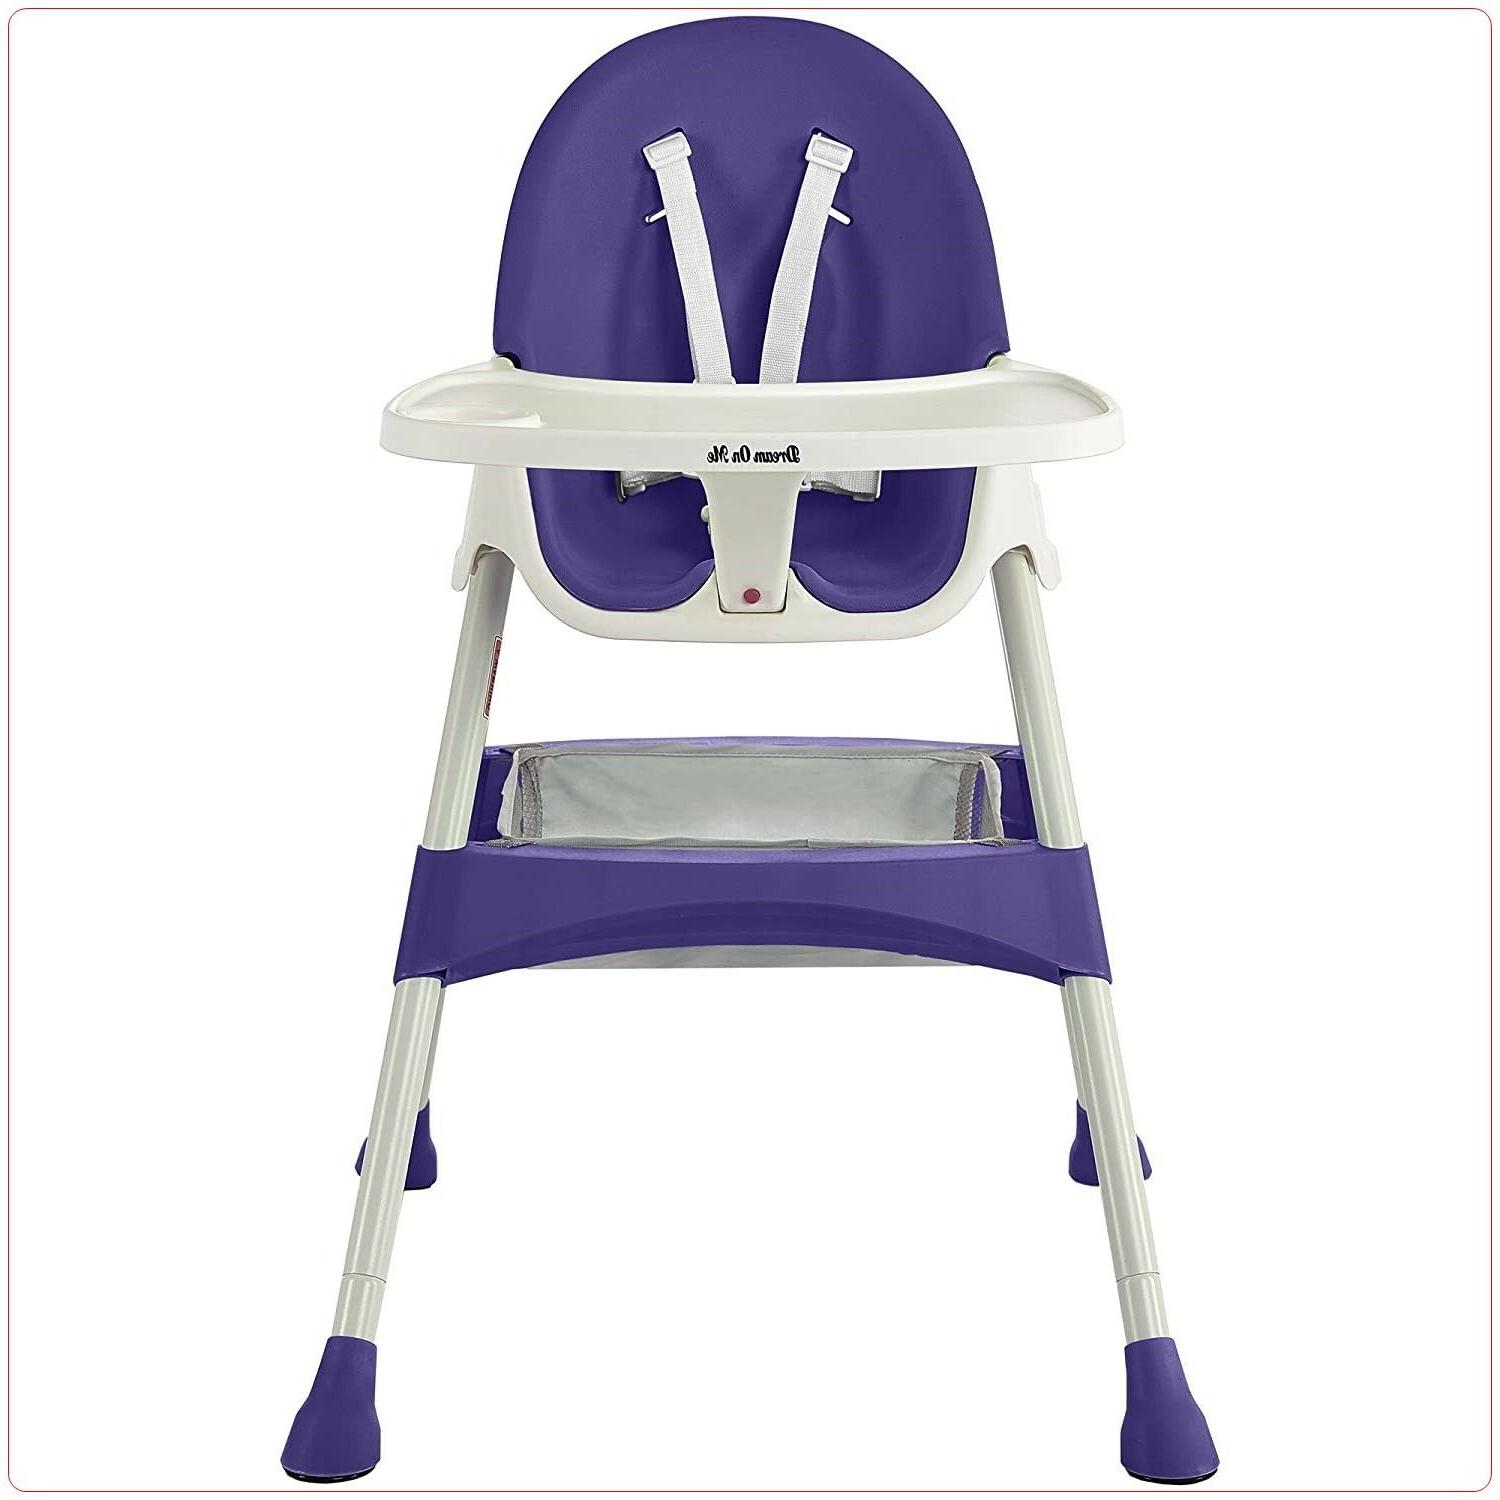 Baby Feeding Chair Full Size with